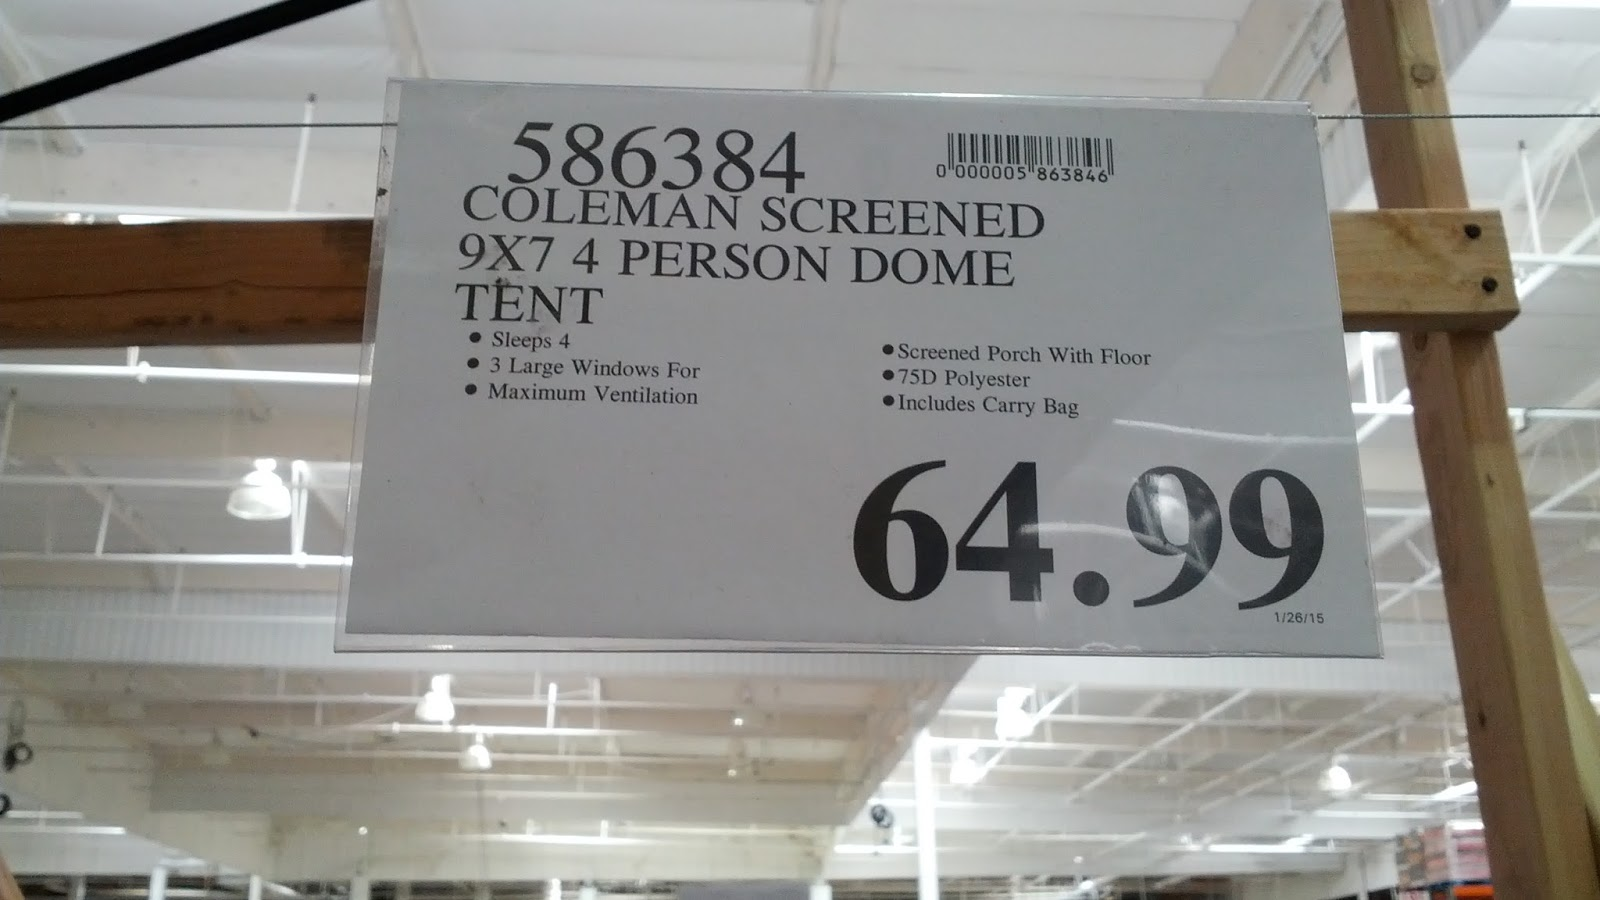 Set up is easy with the Coleman Screened 4 person Dome Evanston Tent & Coleman Screened 4-person Dome Evanston Tent | Costco Weekender